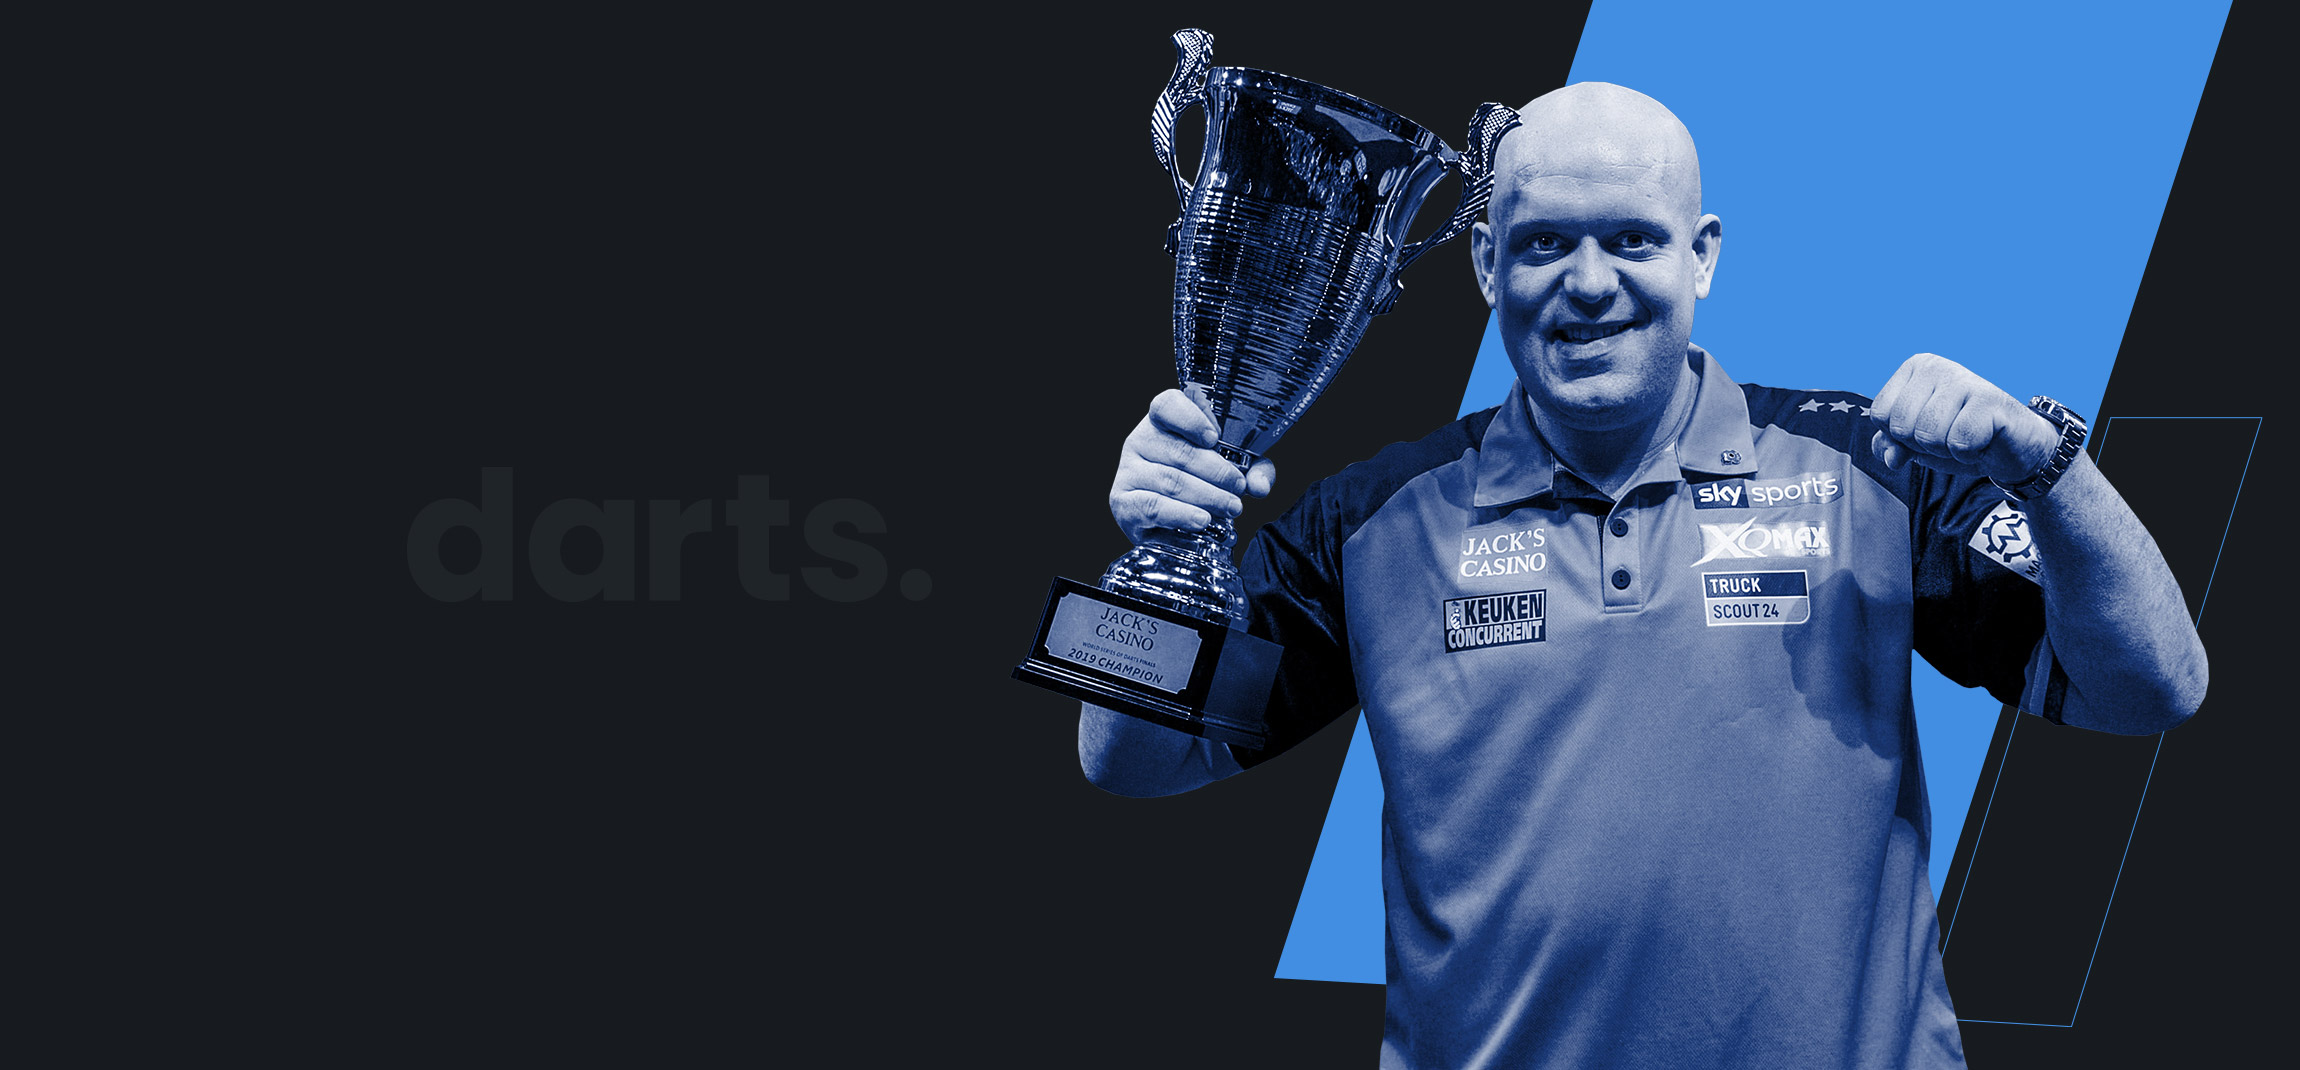 We are Matchroom Sport - We are World Cup of Darts